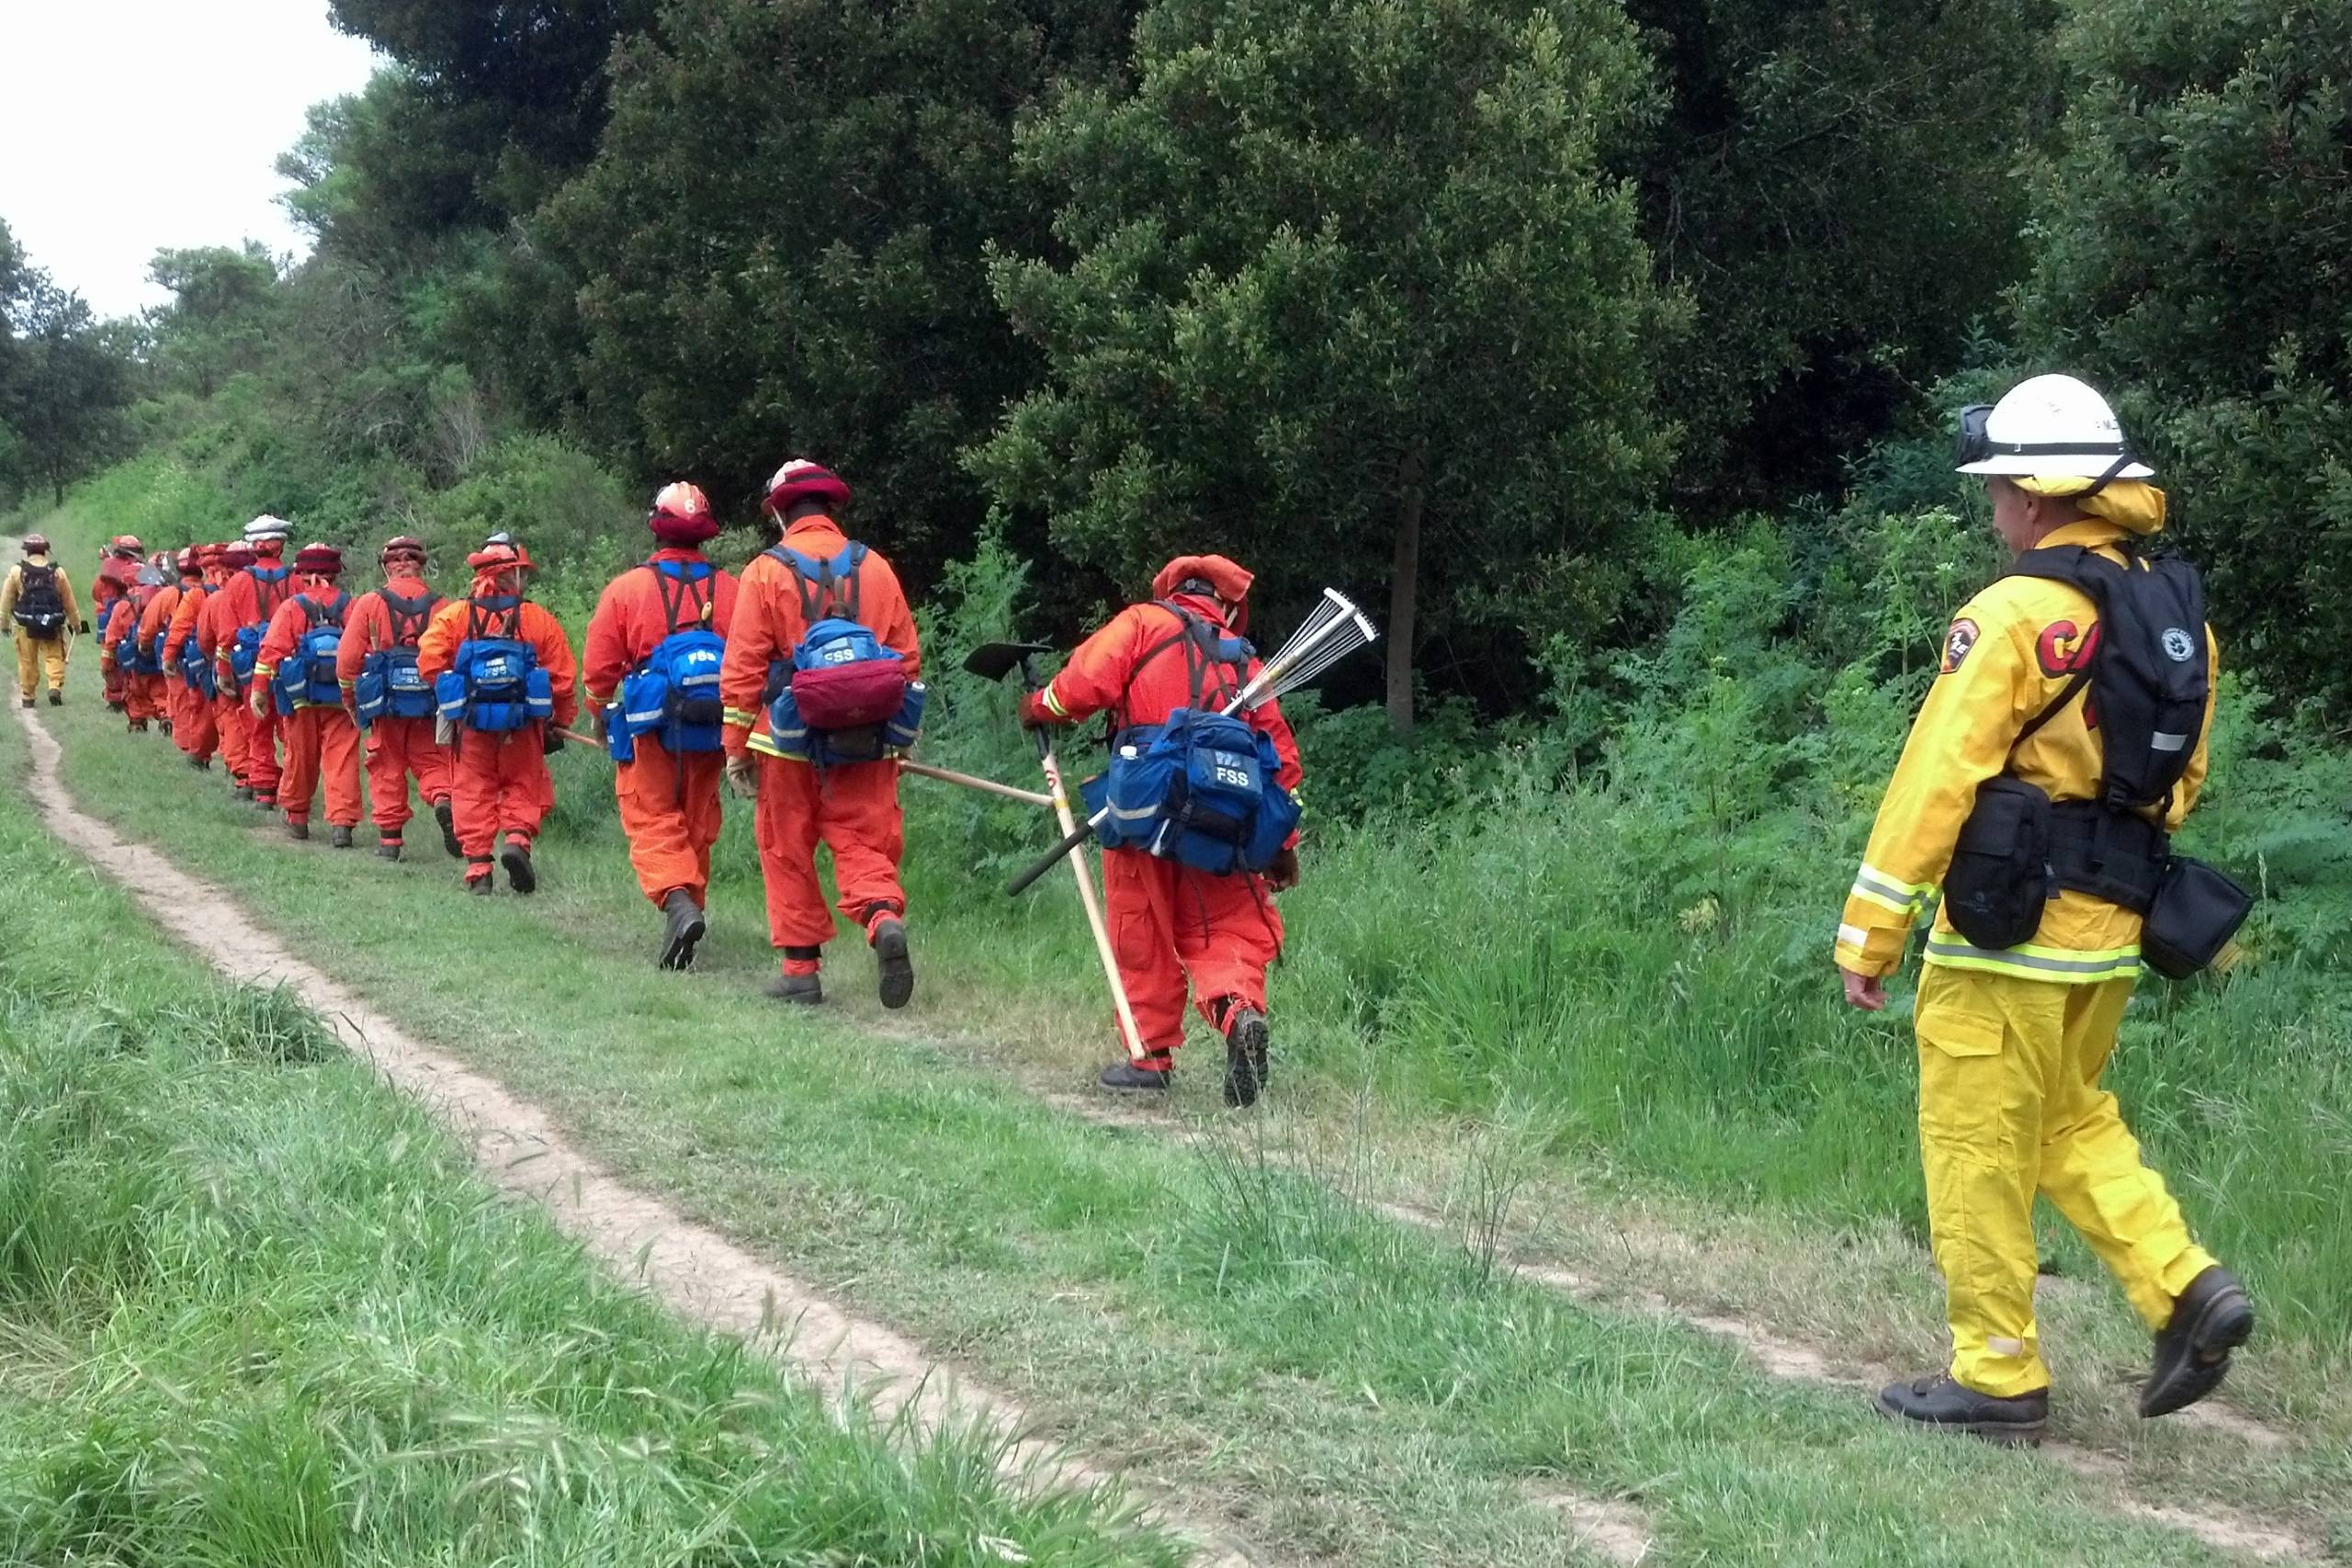 A line of firefighters wearing bright orange uniforms and carrying equipment walk alongside a forest in front of a firefighter wearing a traditional yellow uniform.